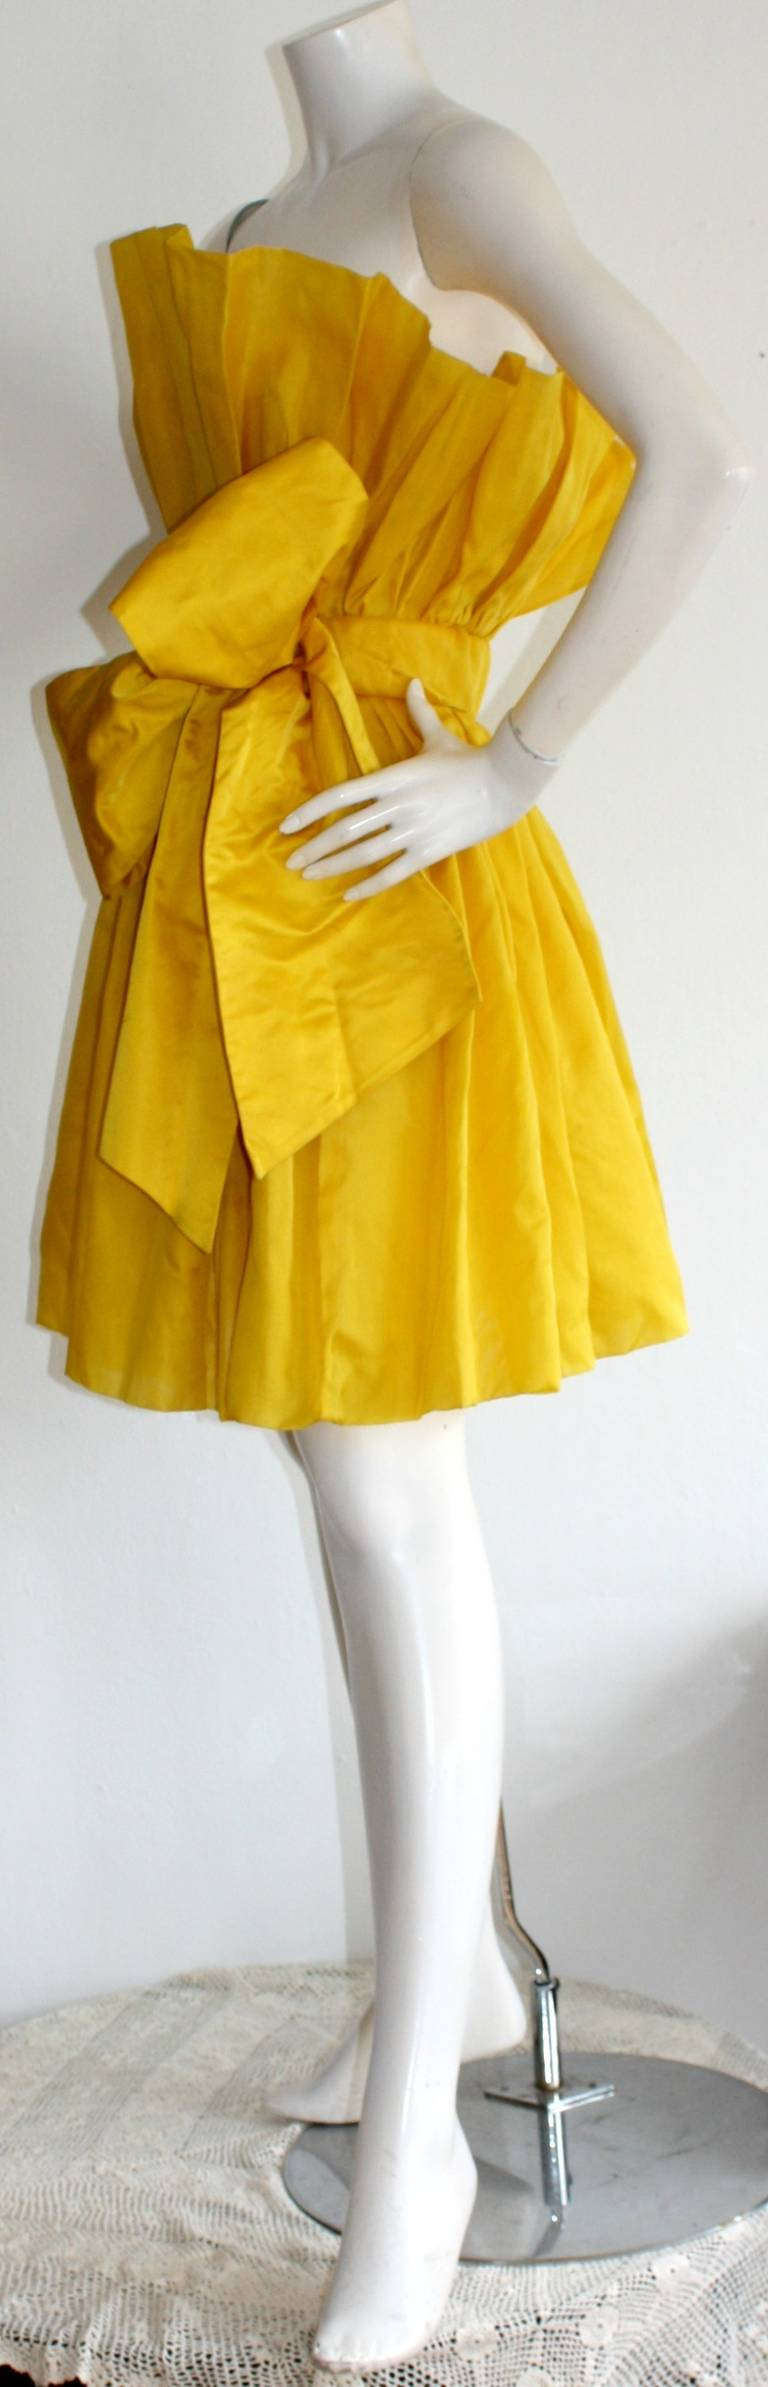 James Purcell Stunning Vintage Origami Fan Dress 4